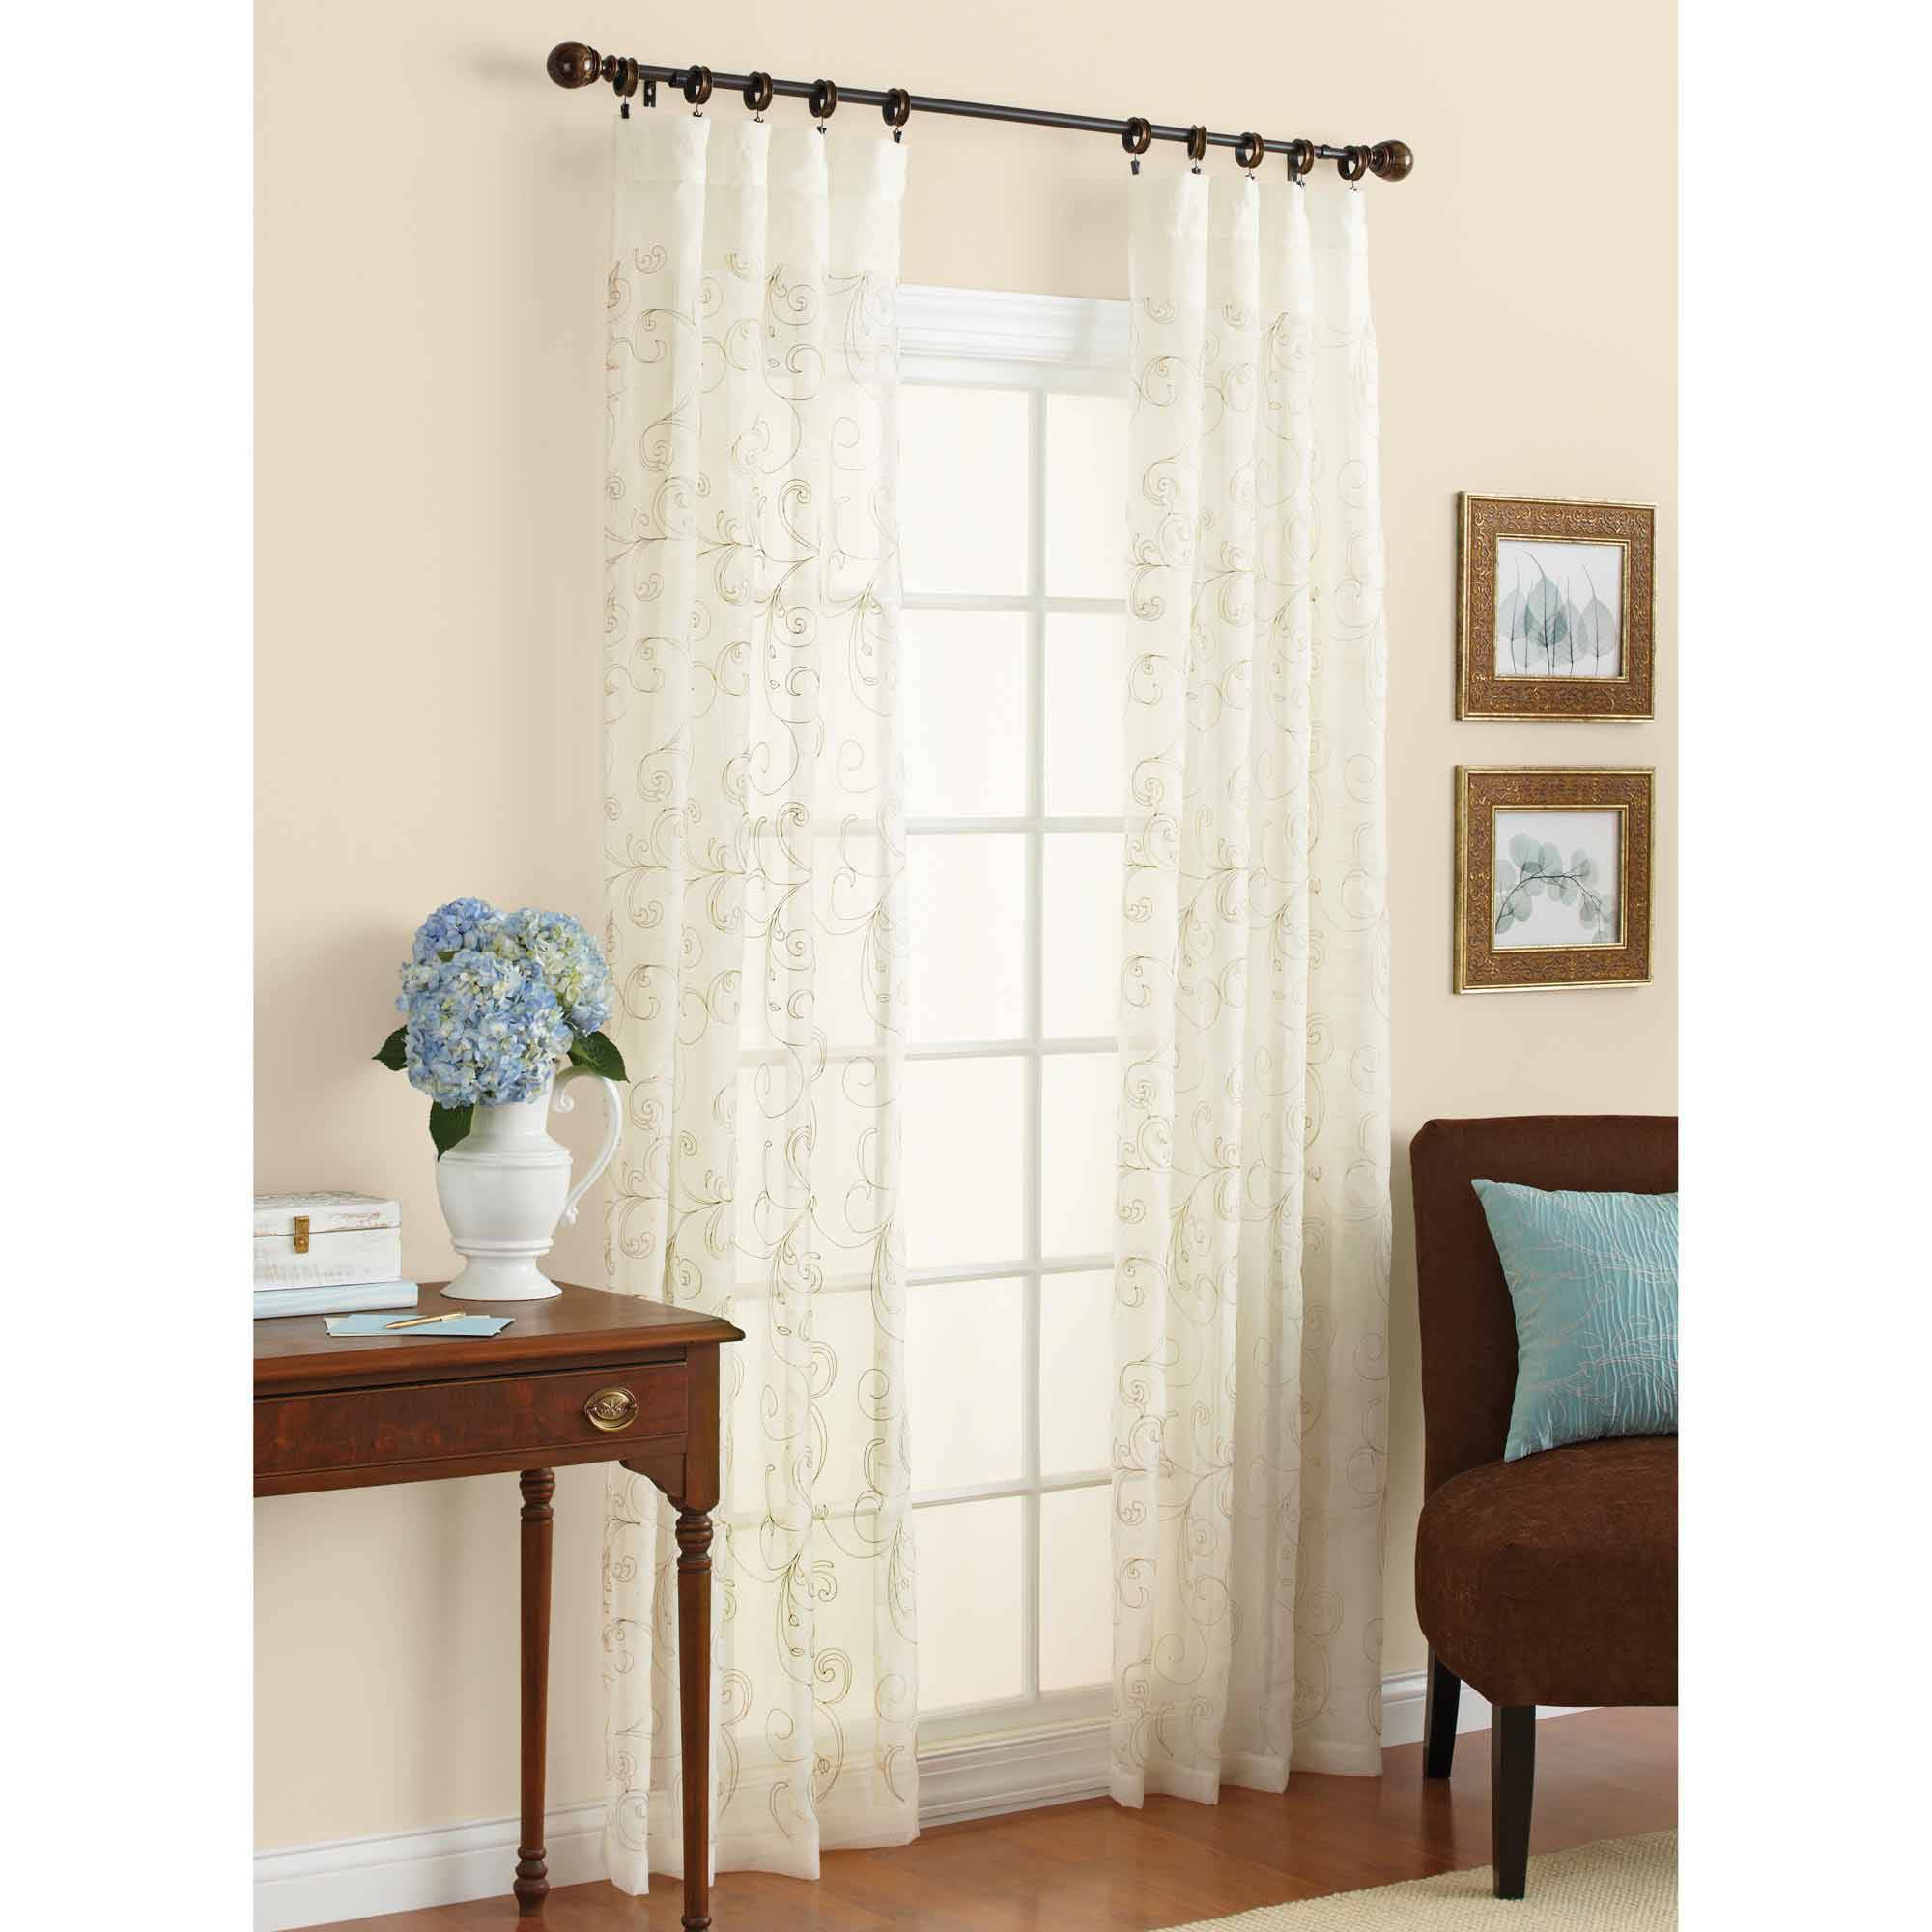 curtains curtain pleat grey macrame gray white pencil dark window grommet panels top